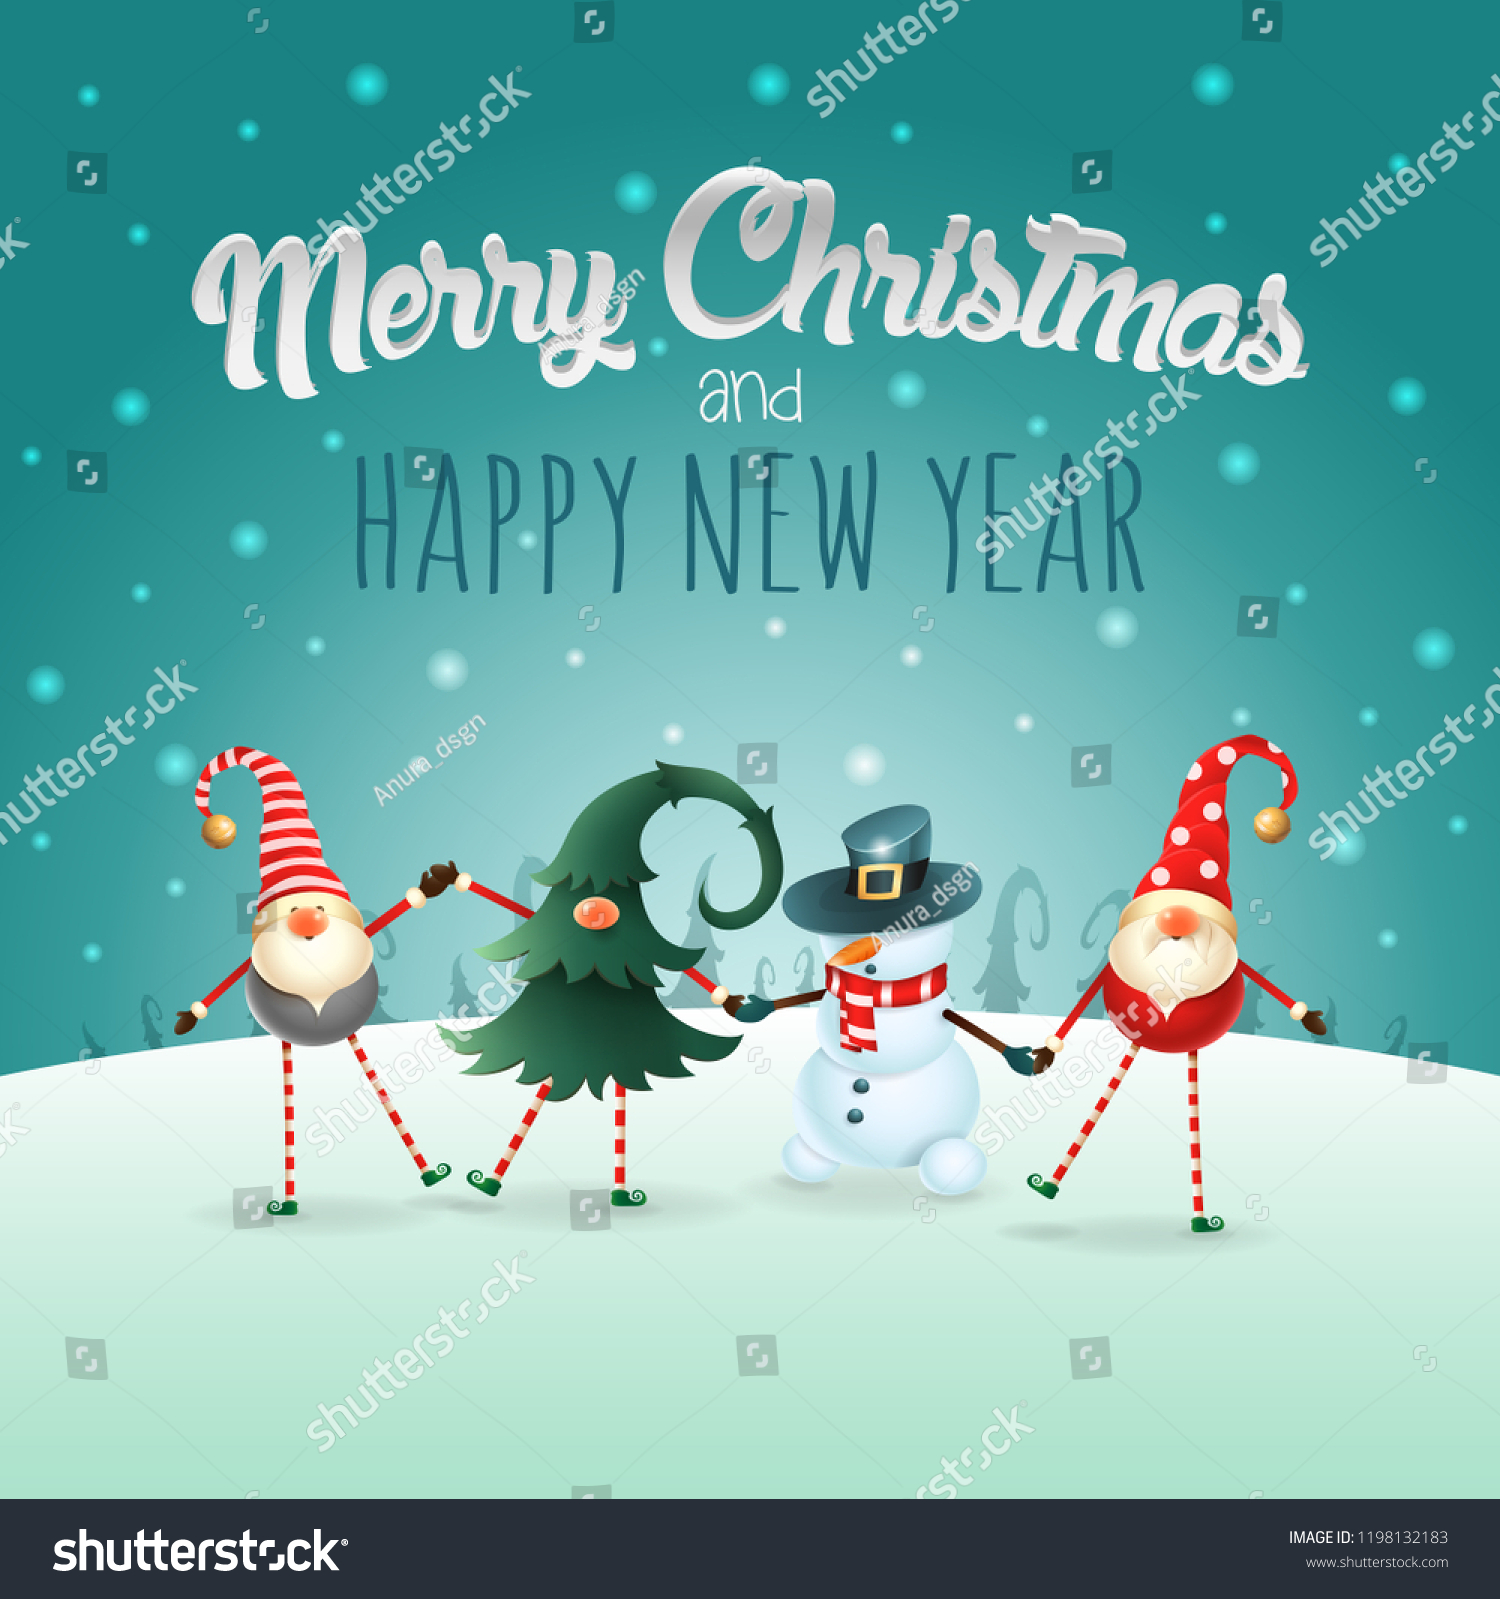 merry christmas and happy new year greeting card with text happy friends celebrate christmas on